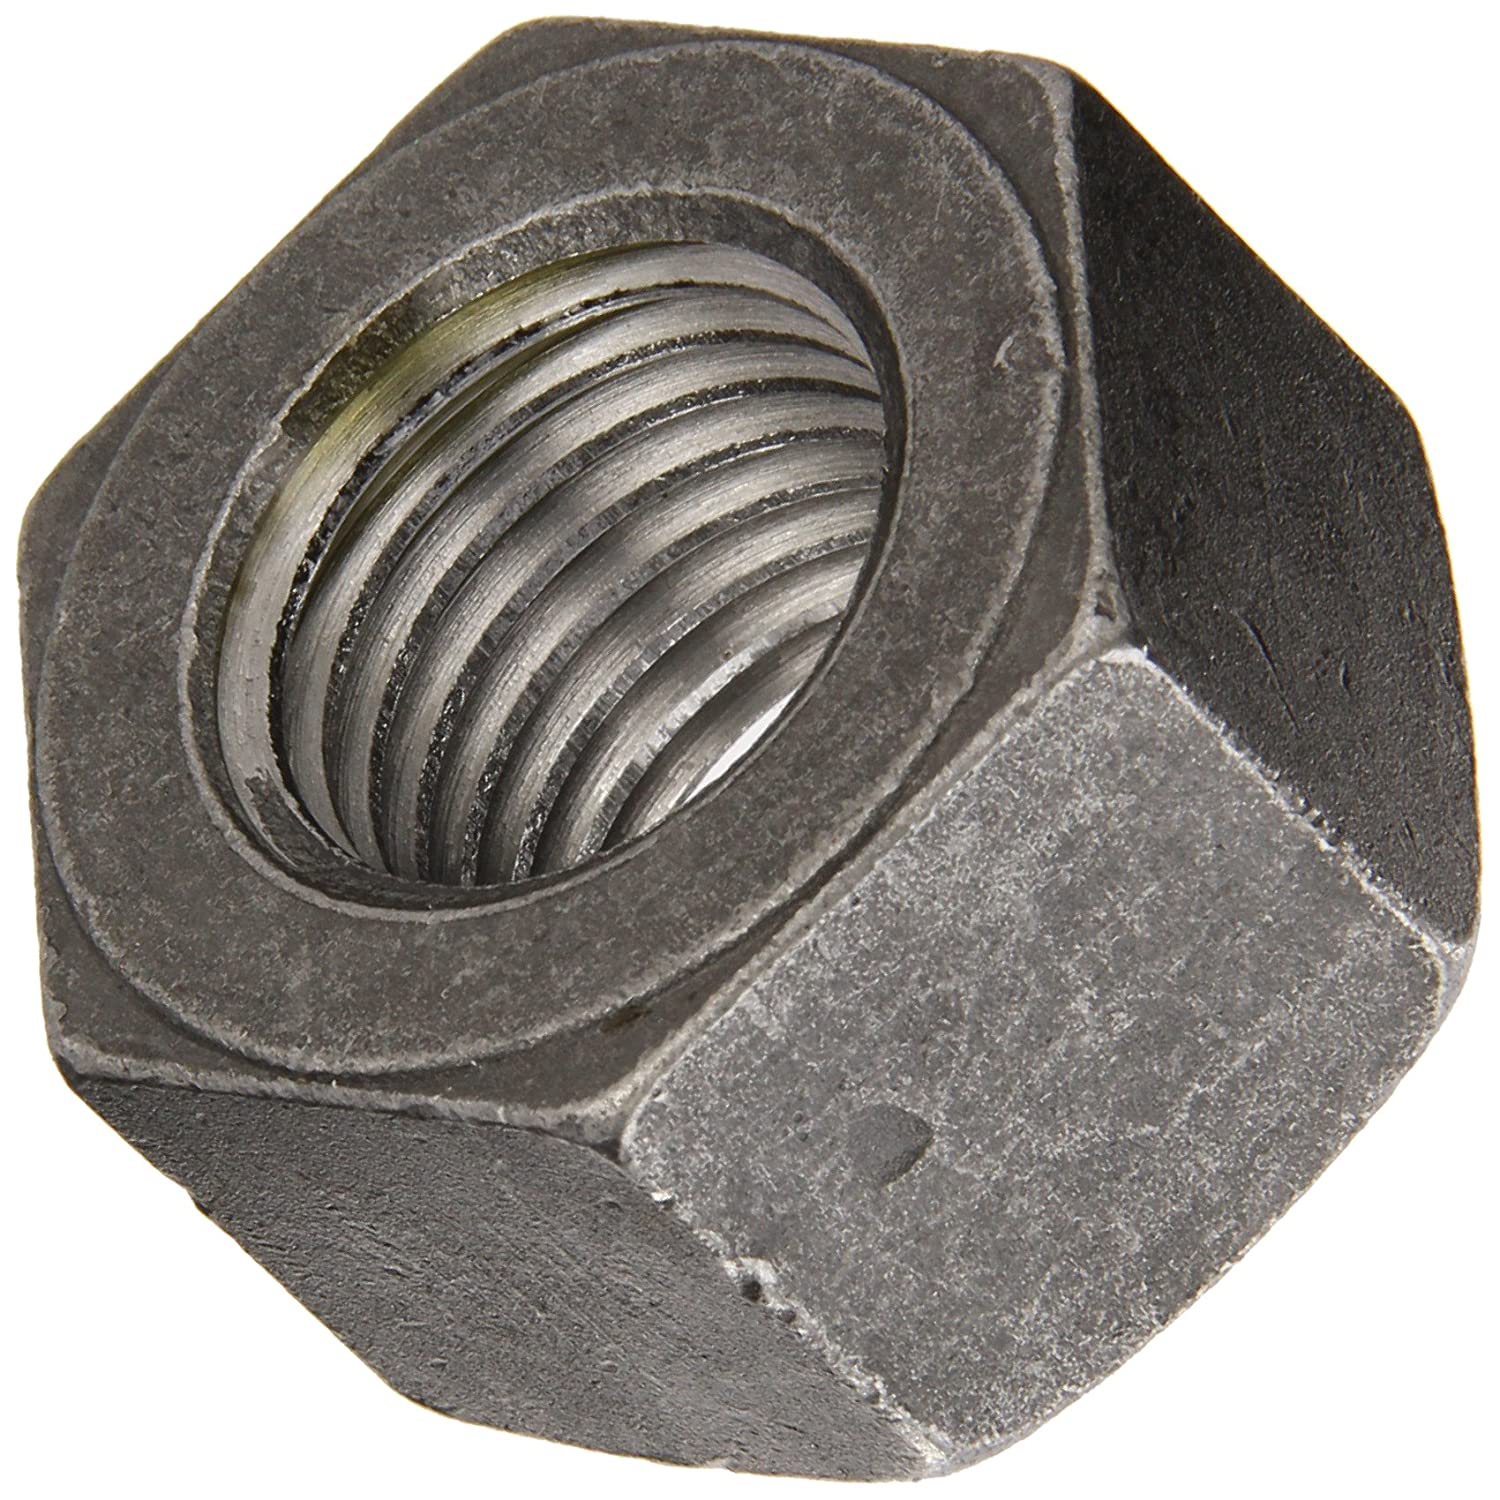 Grade C 5//8-11 Thread Size ASME B18.2.2 and ASTM A325 Pack of 25 Pack of 25 1-1//16 Width Across Flats Steel Heavy Hex Nut Plain Finish Small Parts 39//64 Thick 5//8-11 Thread Size 1-1//16 Width Across Flats 39//64 Thick